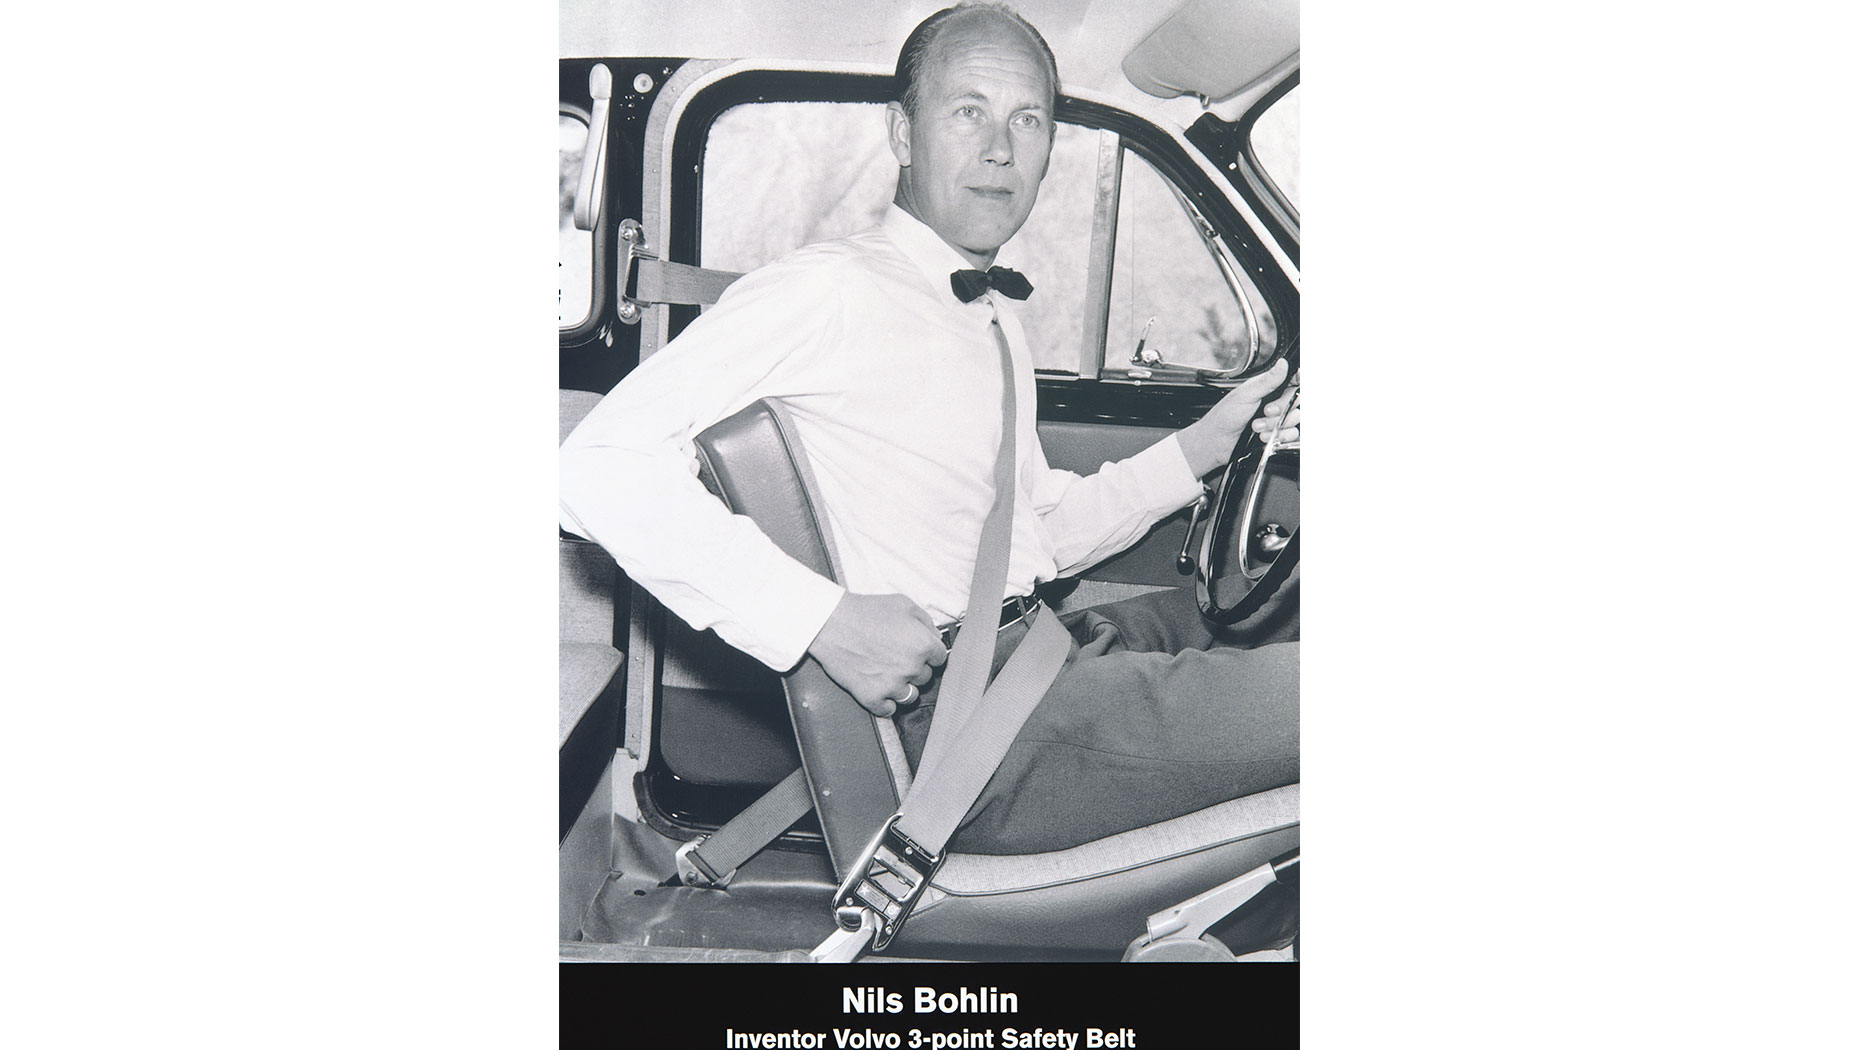 The Seat Belt Volvo's leading Safety invention